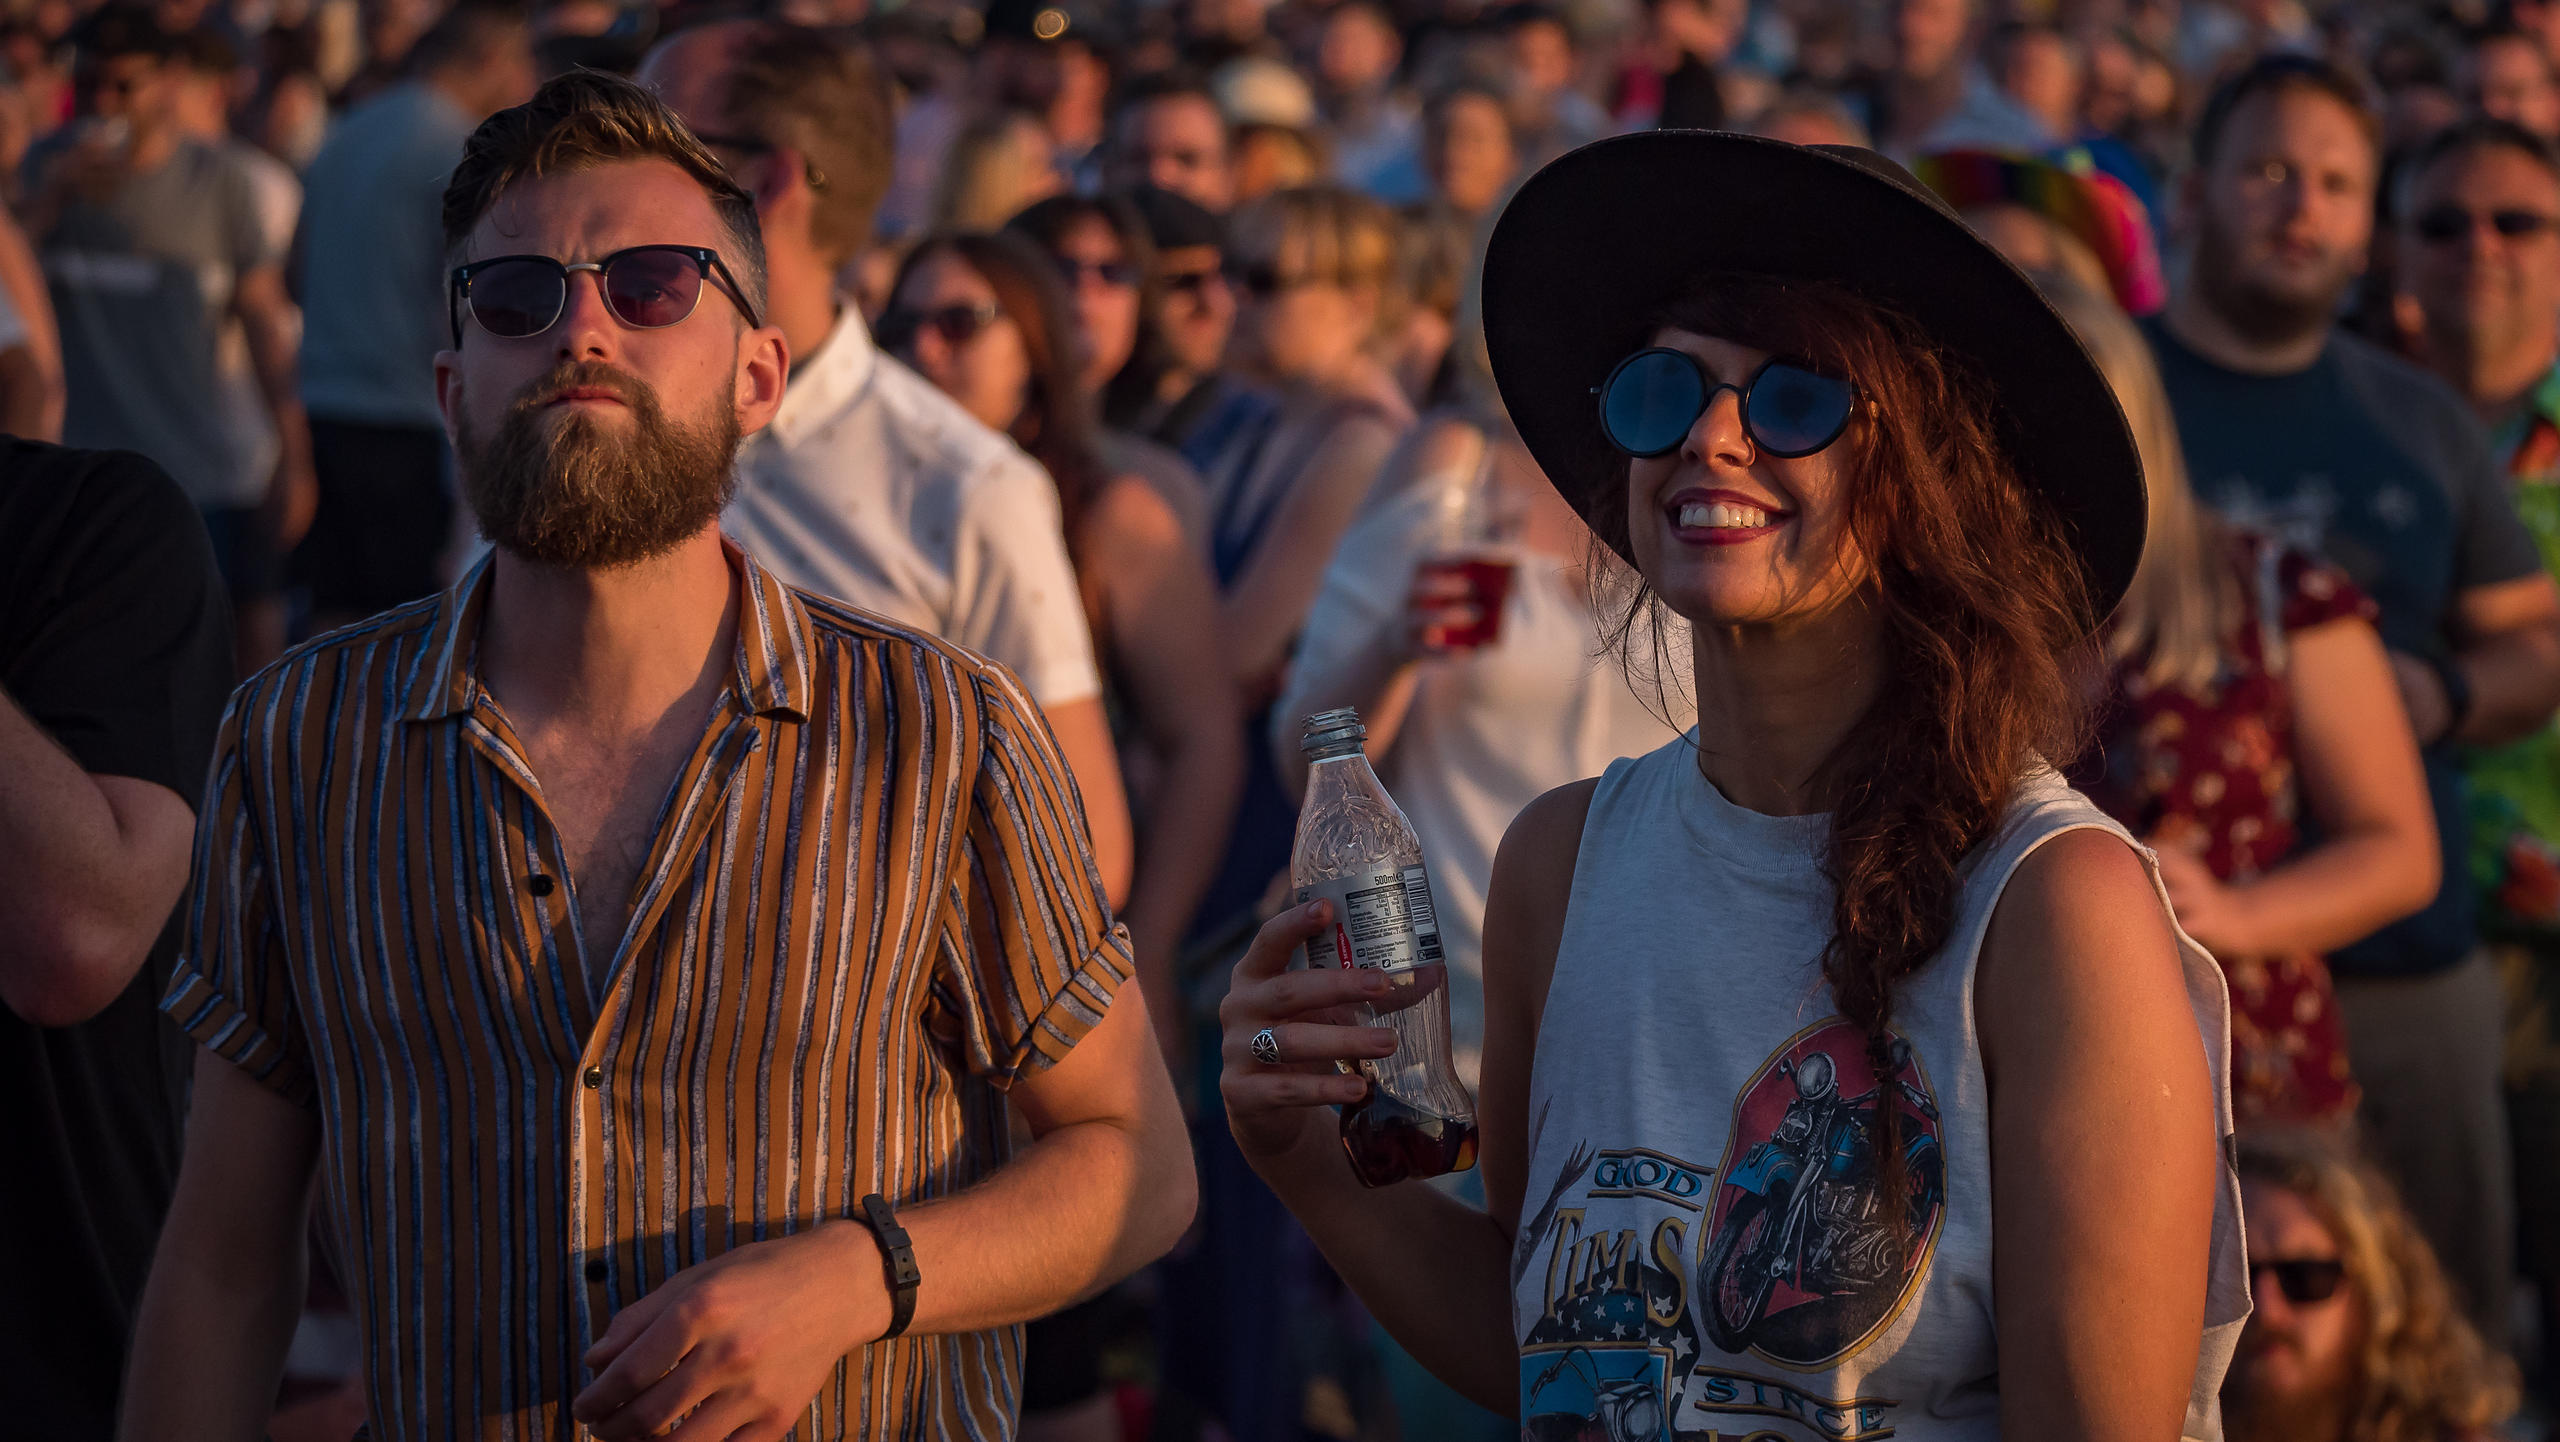 Festival Go-ers at Victorious Festival 2017 Having  a Blast in Beautiful Weather in Portsmouth, Hampshire